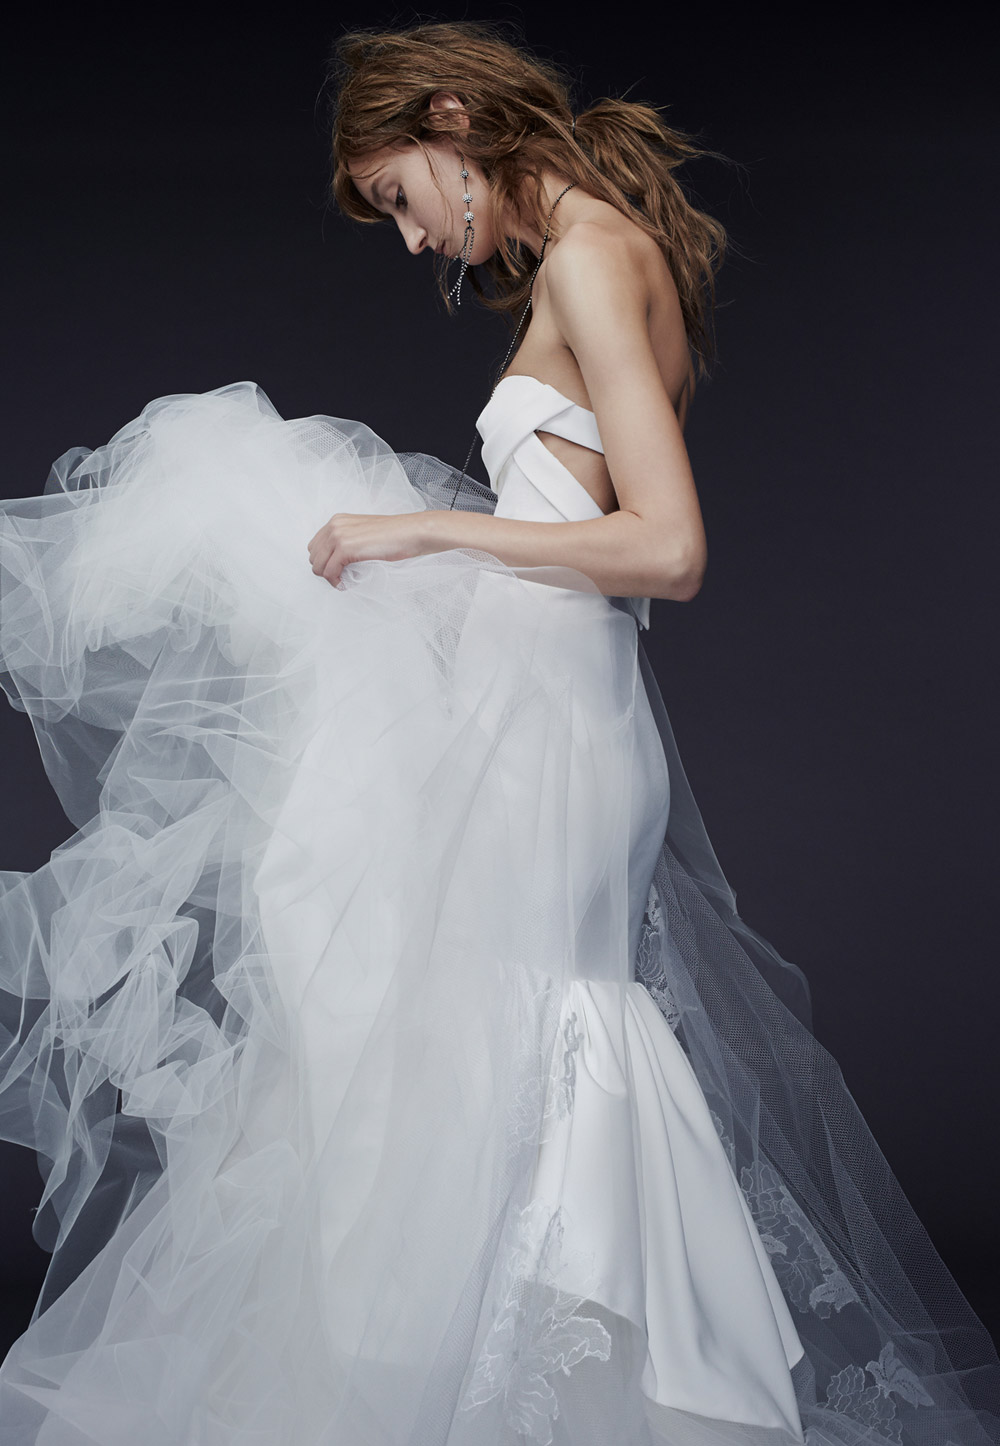 Vera wang fall 2015 collection the wedding notebook magazine for The notebook wedding dress